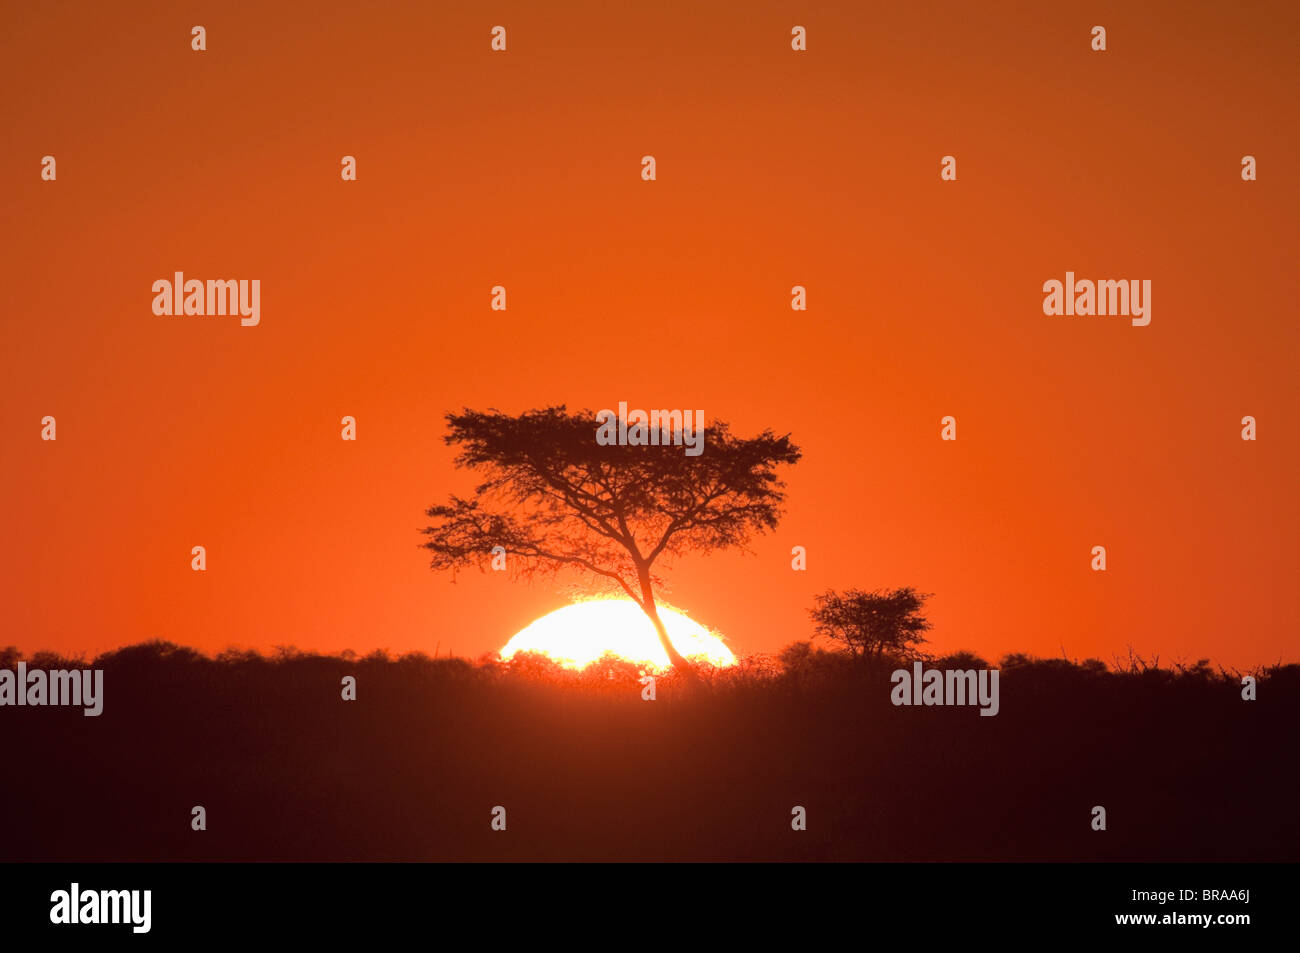 Deception Valley, Central Kalahari Game Reserve, Botswana, Africa - Stock Image